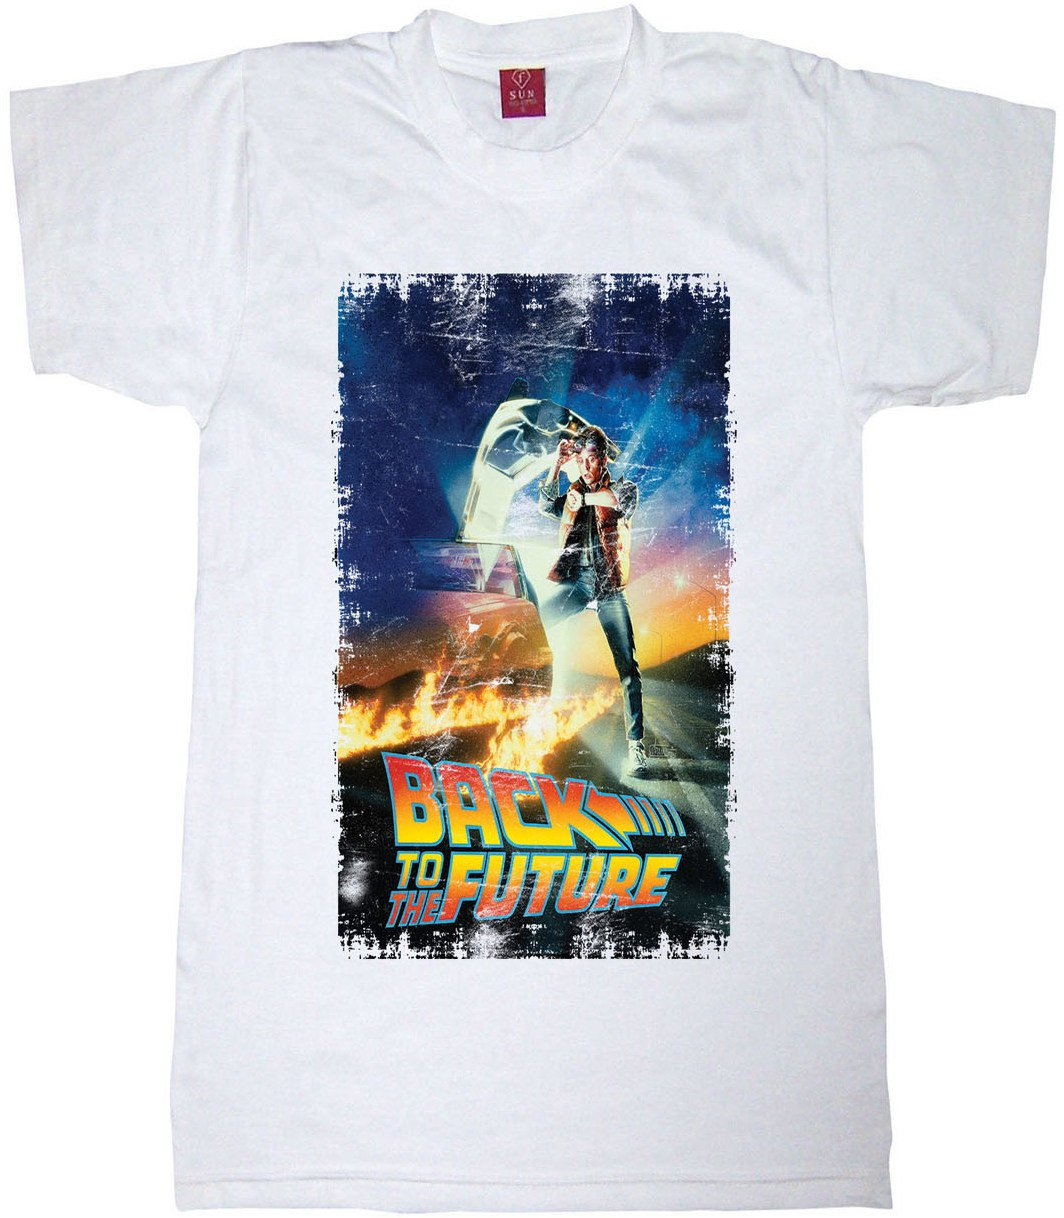 Back To Future Shirt Back To The Future Design Retro Poster Size XL